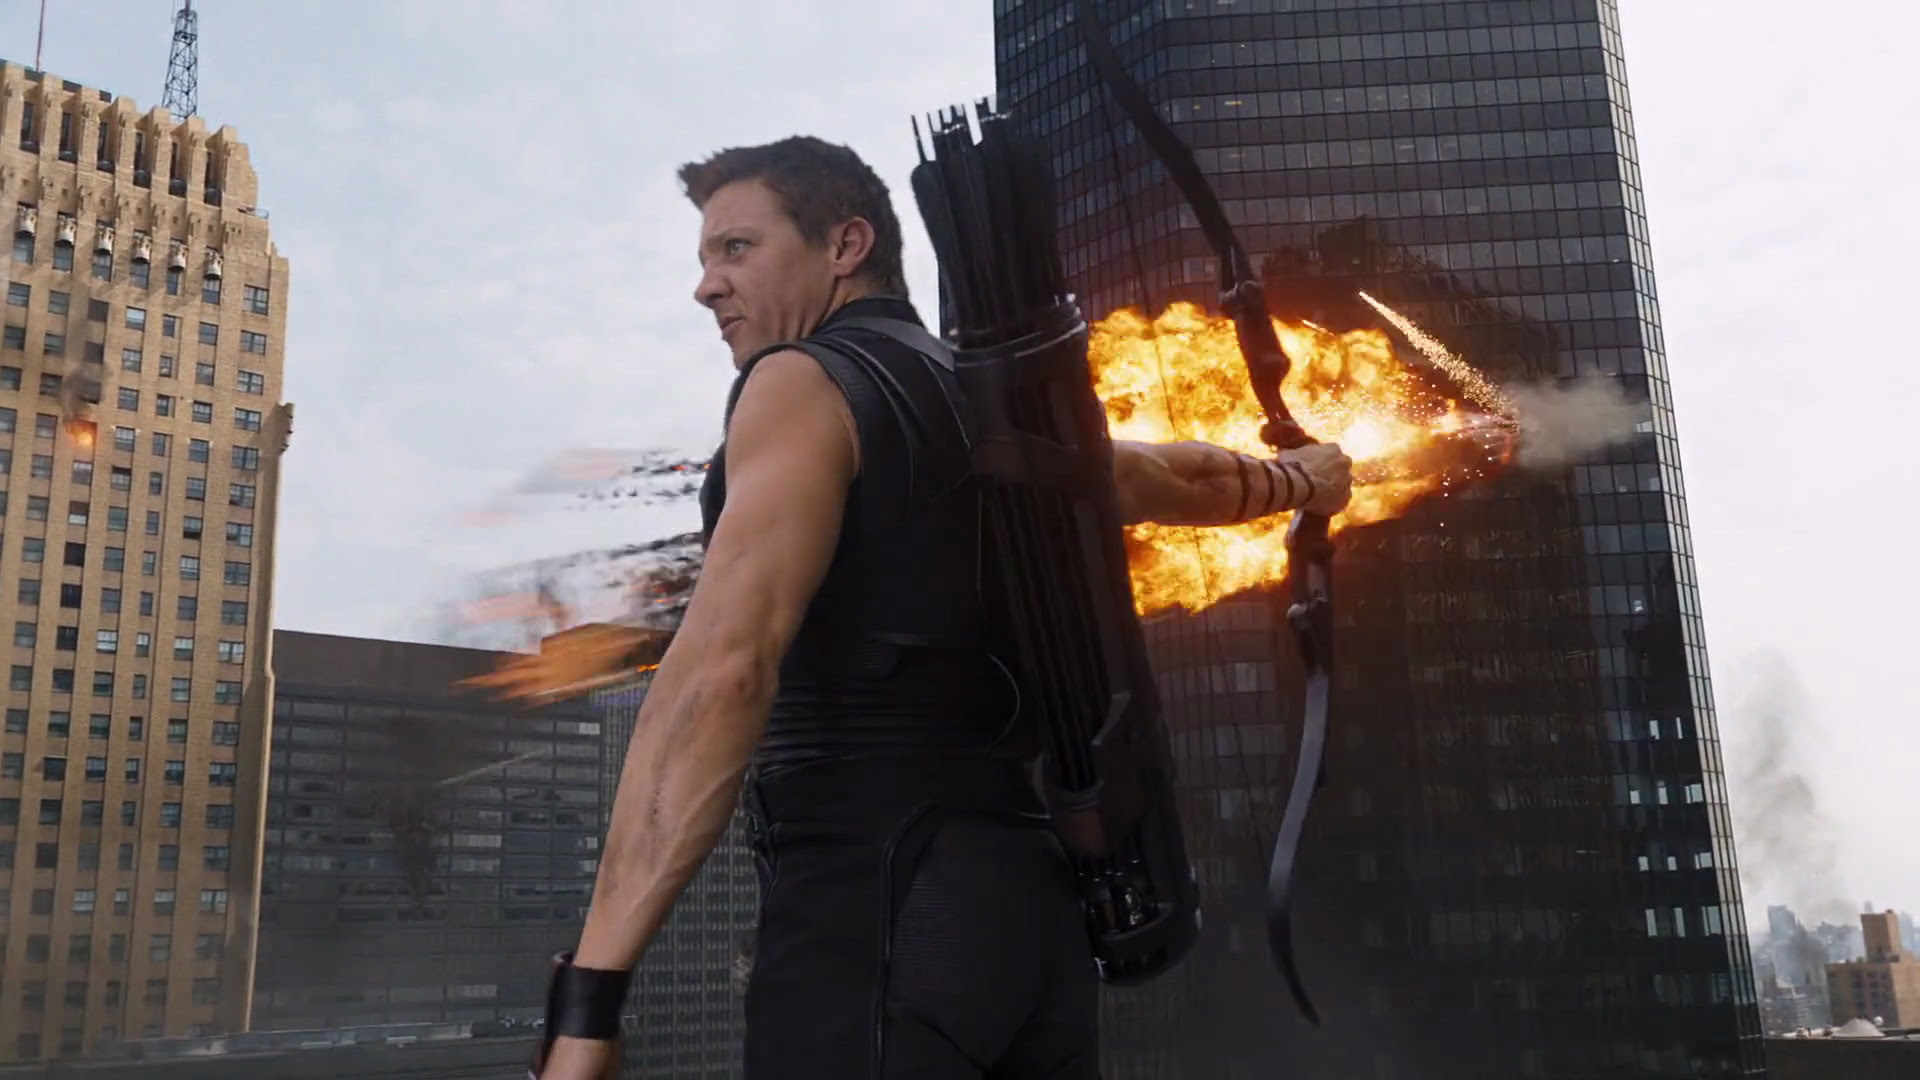 http://vignette3.wikia.nocookie.net/marvelcinematicuniverse/images/e/eb/The-Avengers-Climax-Hawkeye-the-avengers-34726152-1920-1080.jpg/revision/latest?cb=20130902154951